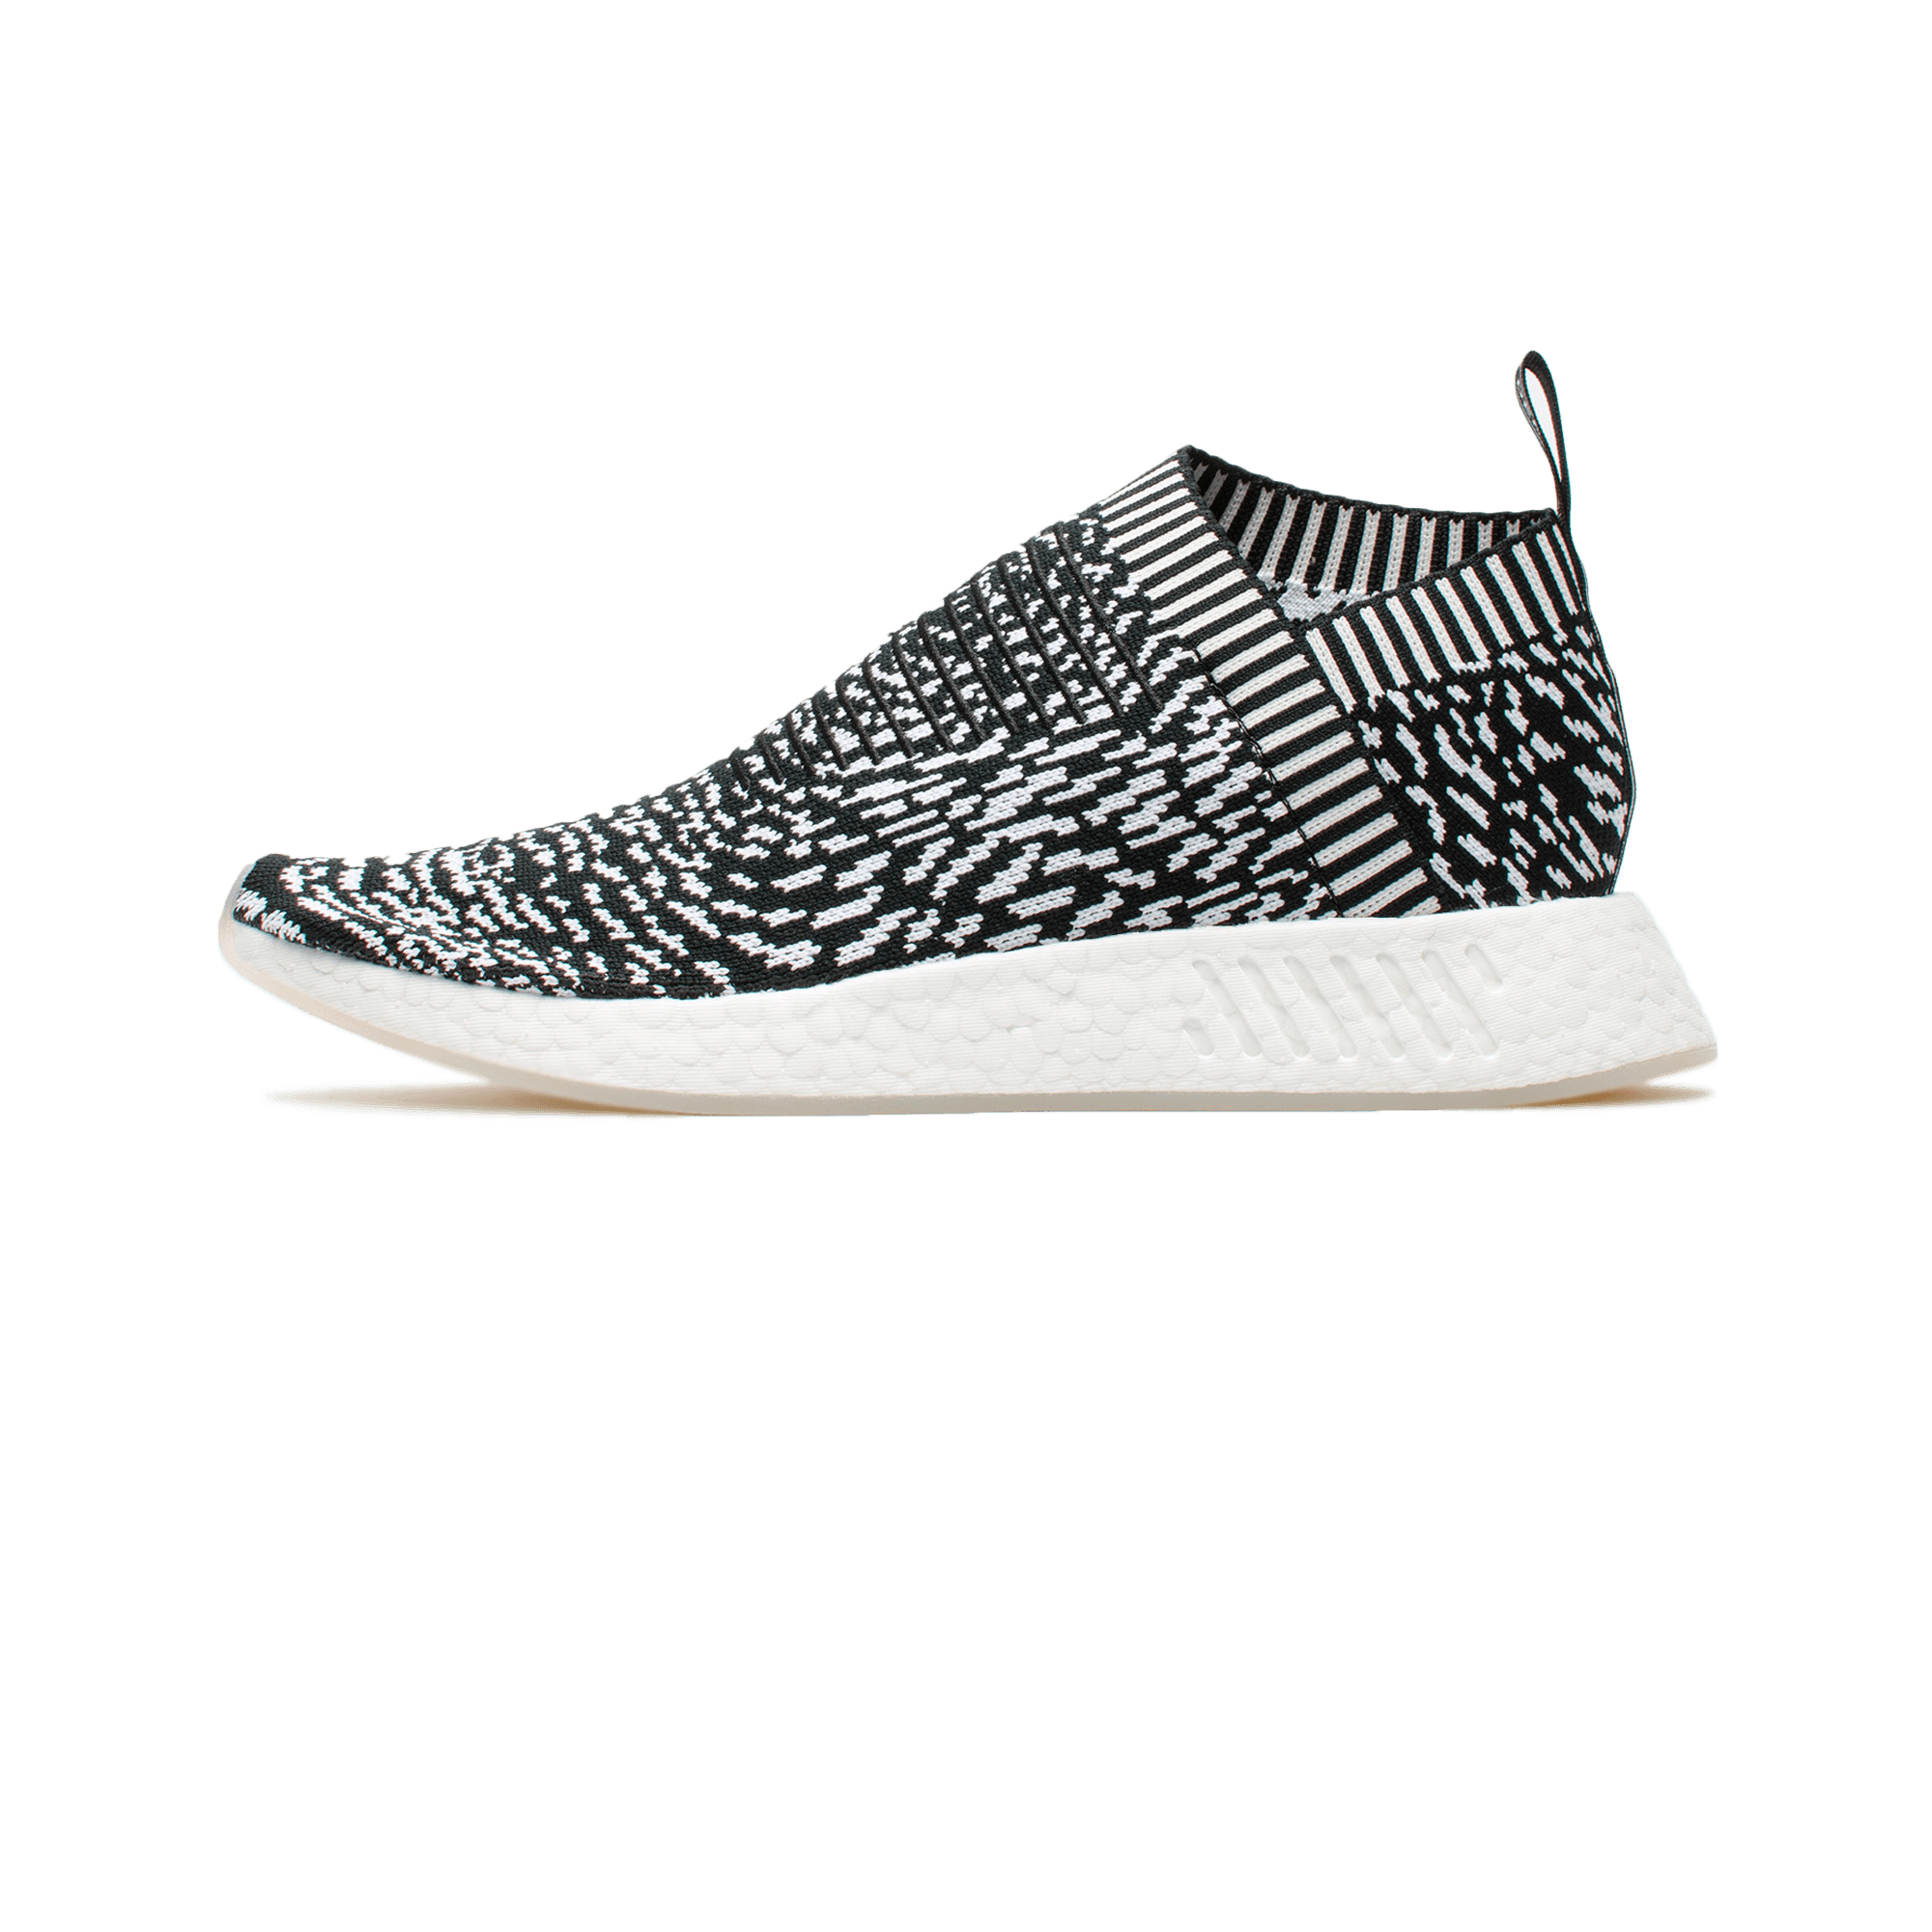 NMD XR1 Primeknit Shoes adidas US Raja Ampat Dive Lodge